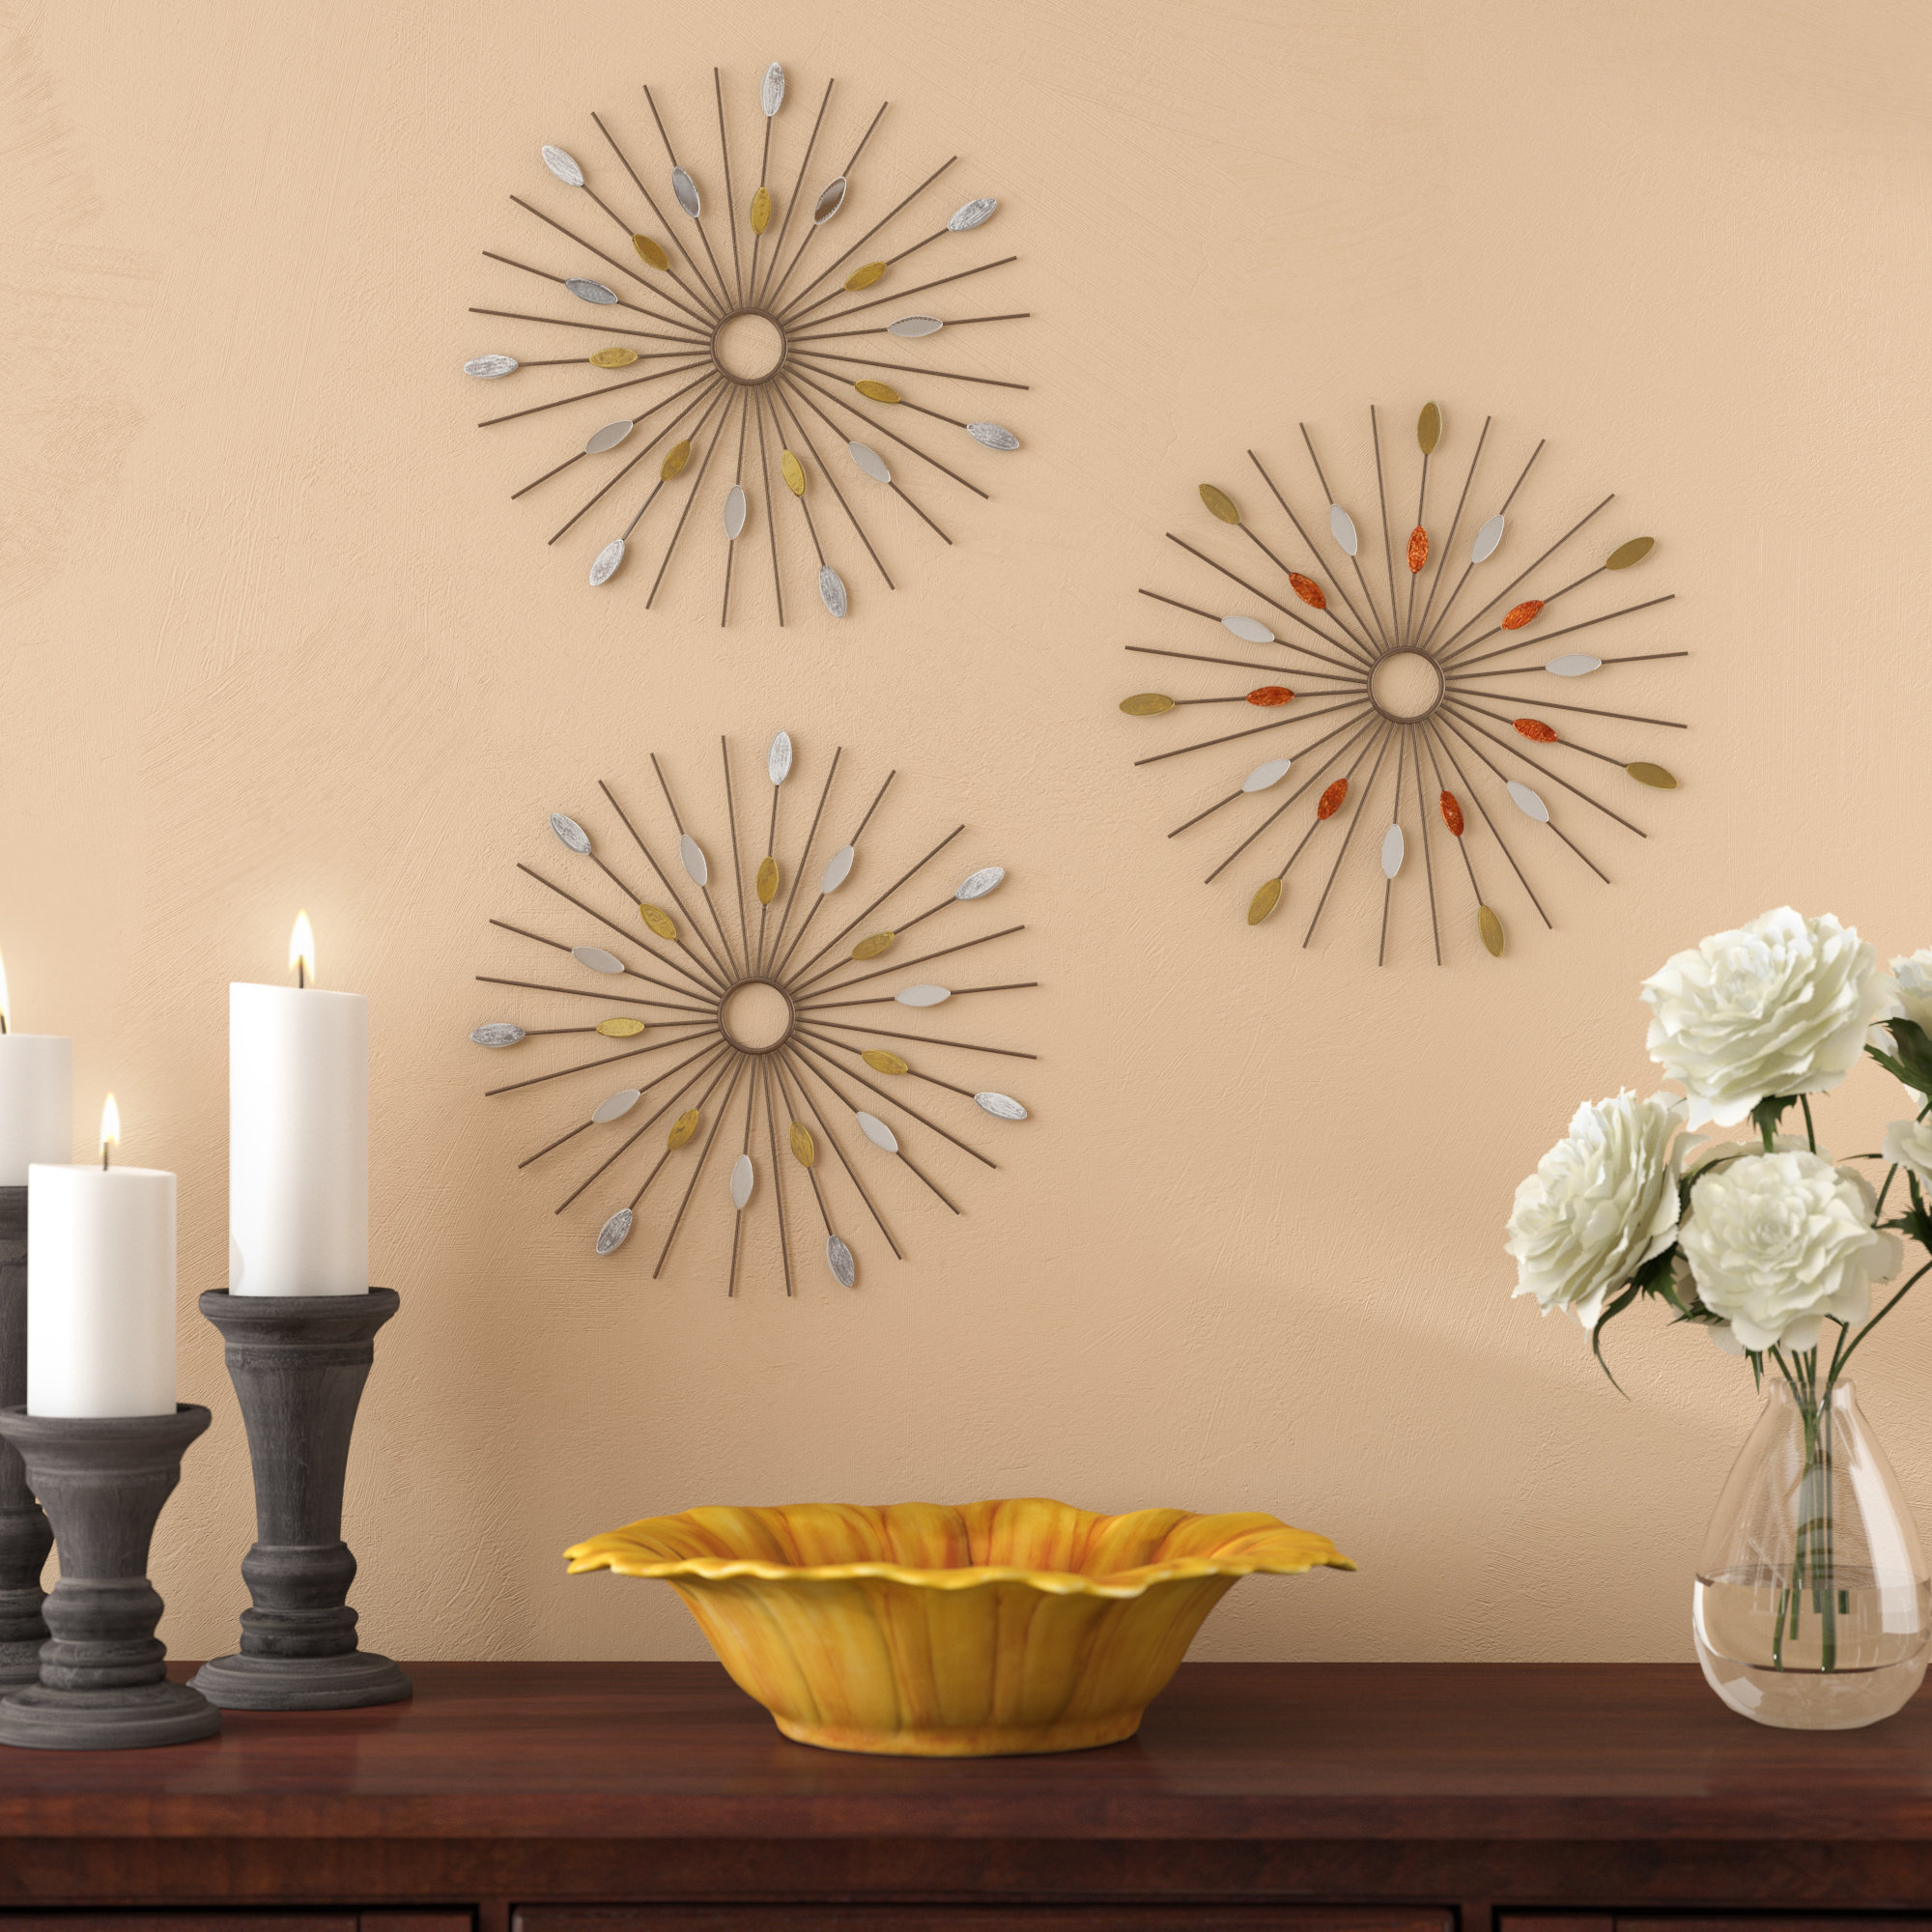 3 Piece Acrylic Burst Wall Decor Sets (Set Of 3) In Most Recent Wrought Studio 3 Piece Wall Décor Set & Reviews (Gallery 7 of 20)